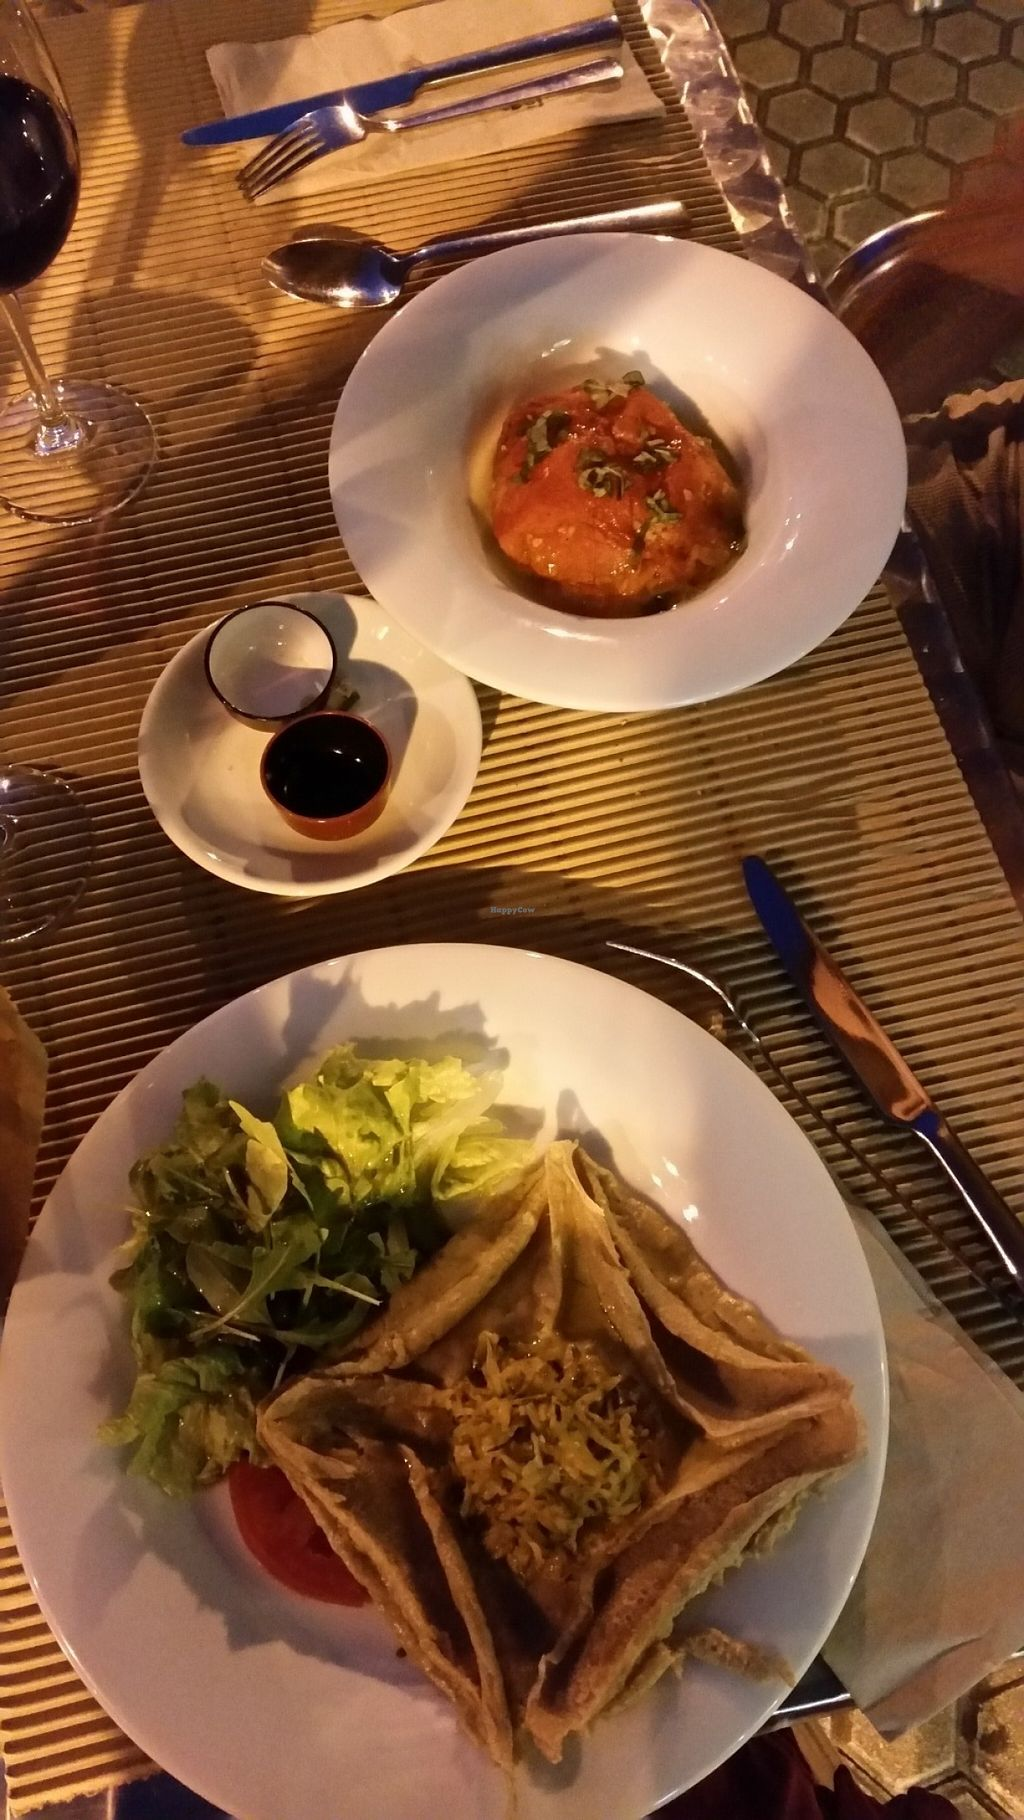 """Photo of Km.0  by <a href=""""/members/profile/nicolenoe"""">nicolenoe</a> <br/>Here in the middle you can see the algas that we got for free and they were delicious!! Also the bread they serve is much better than in other Spanish restaurants. The big dish is a buckwheat patty with salad which was nice but the other thing is a starter (tomato and rice) and it was AMAZING! Also one of the best things me or my critical boyfriend have ever tasted <br/> July 23, 2016  - <a href='/contact/abuse/image/52139/161780'>Report</a>"""